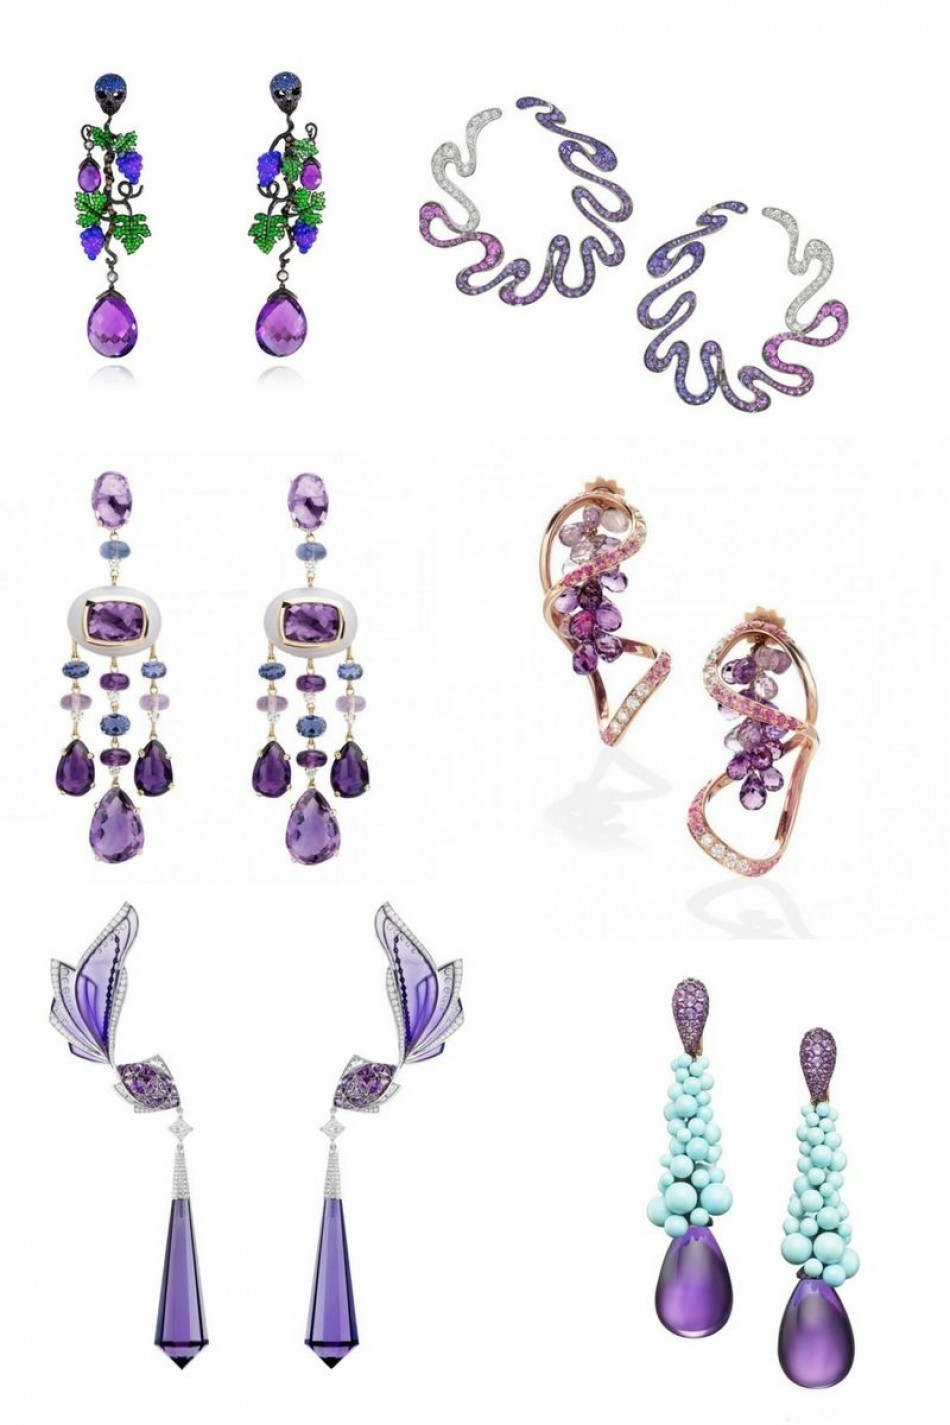 Amethyst earrings, purple glamour for your ears